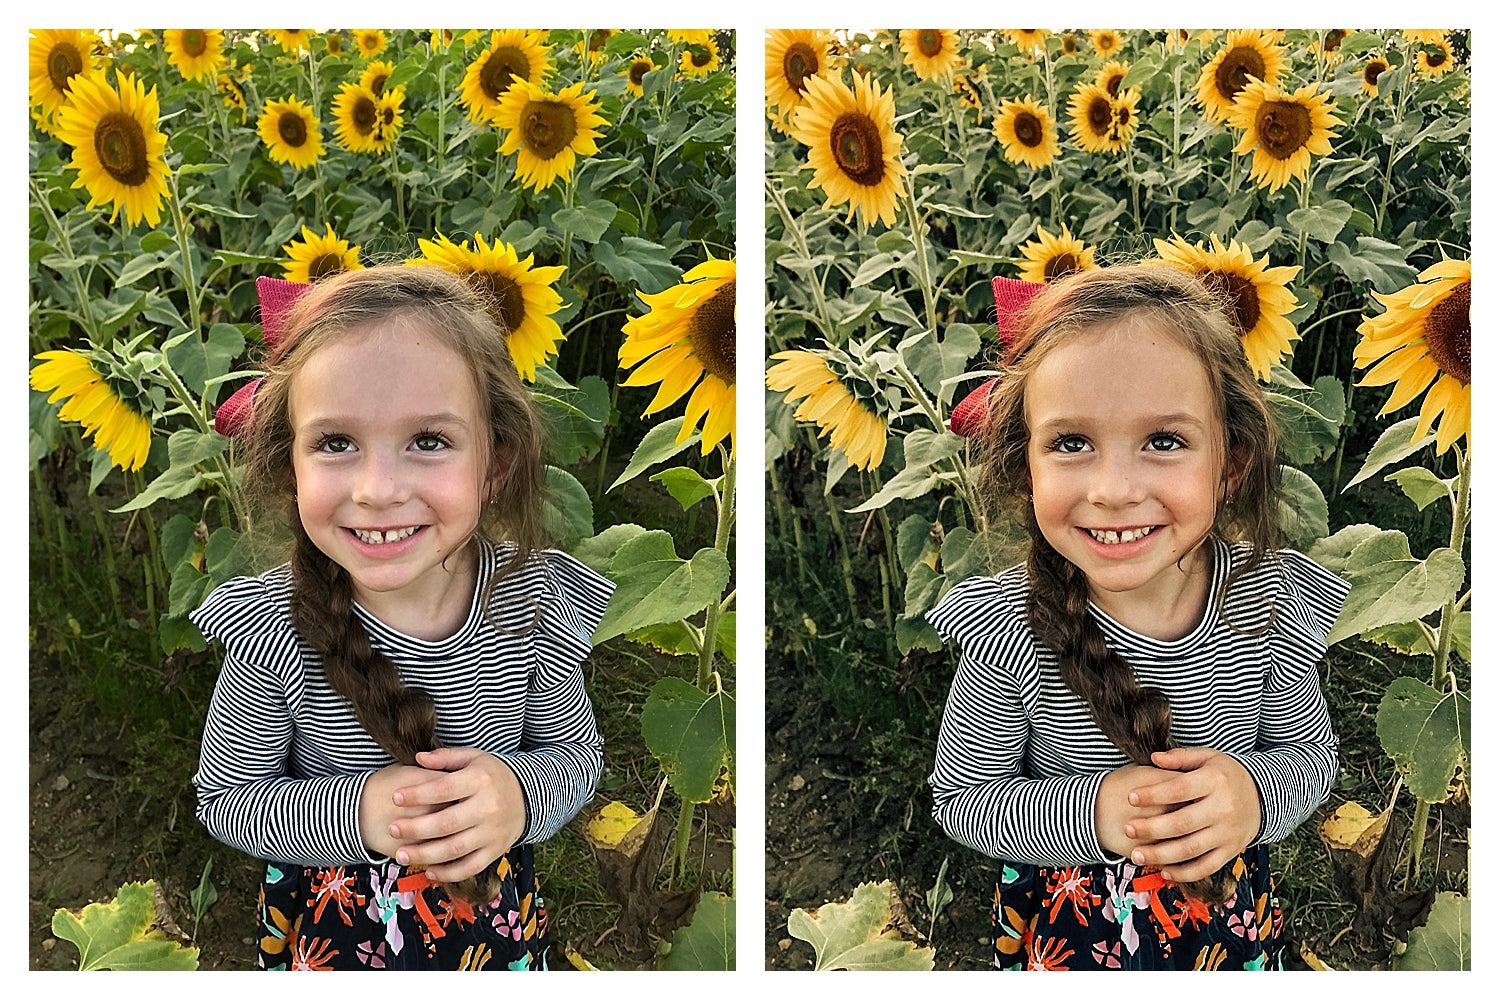 Kylee Ann Lightroom Mobile Preset Pack for iPhone and Android Photos